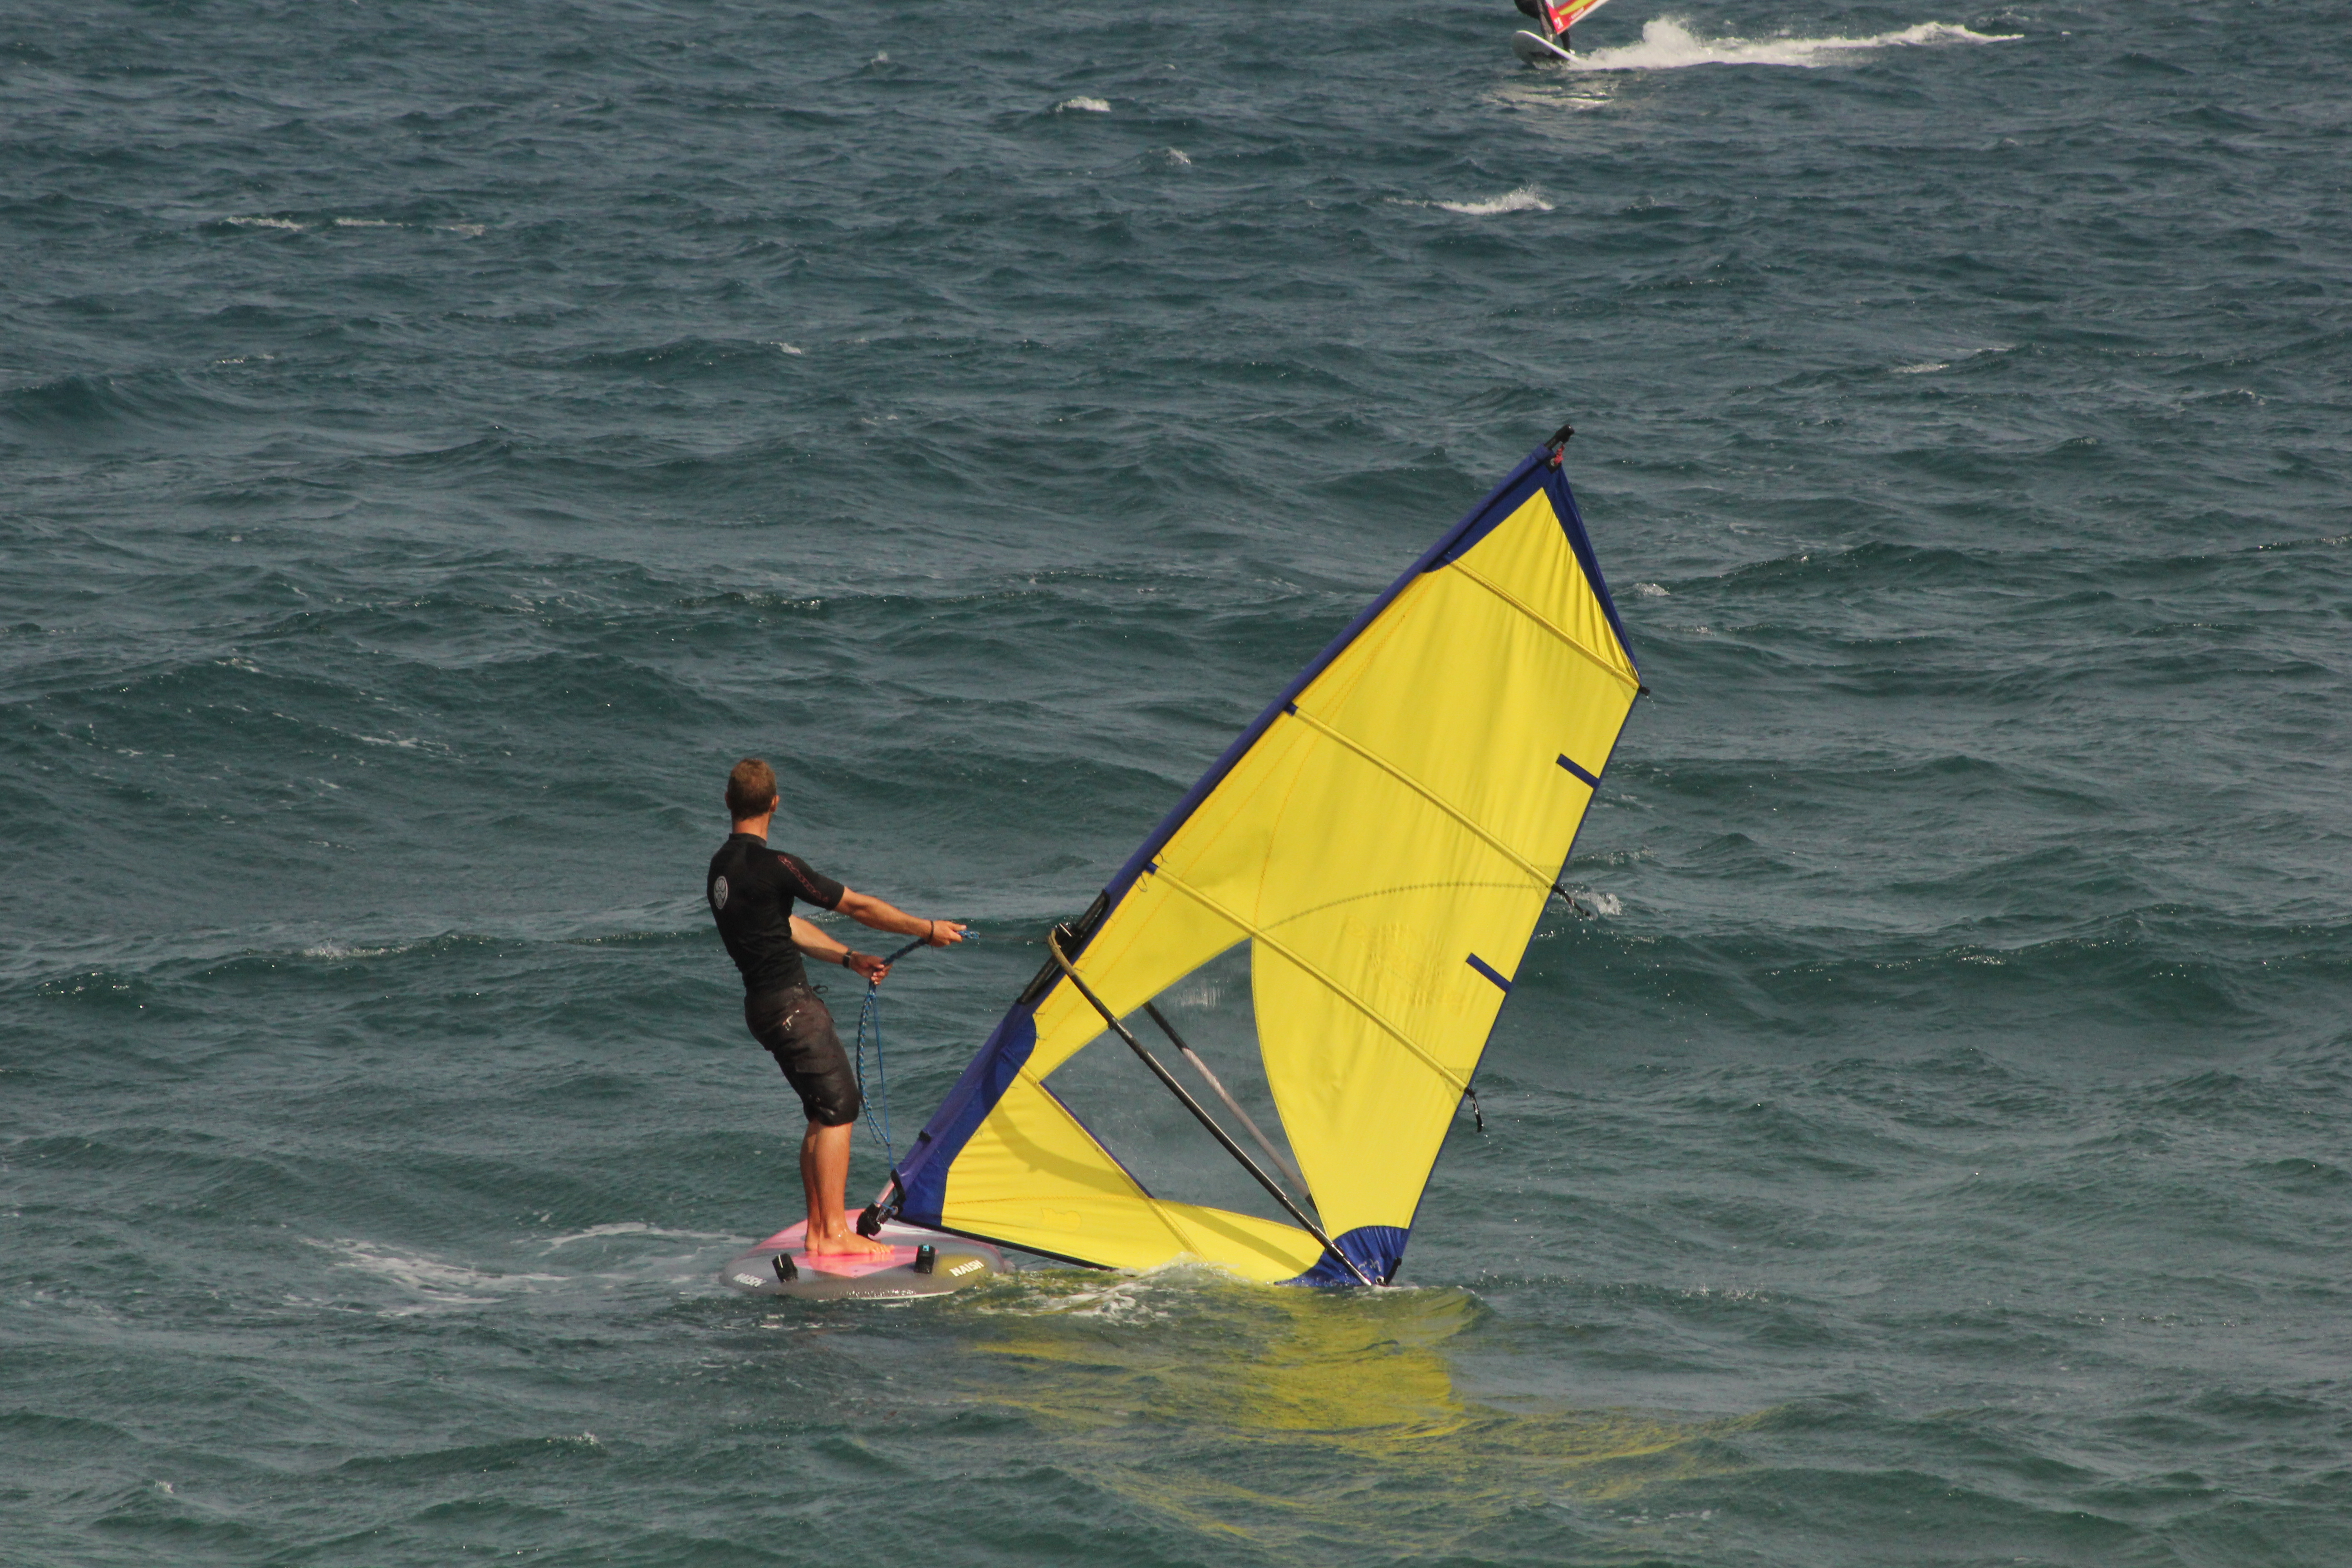 How to Windsurf – How to Start Windsurfing